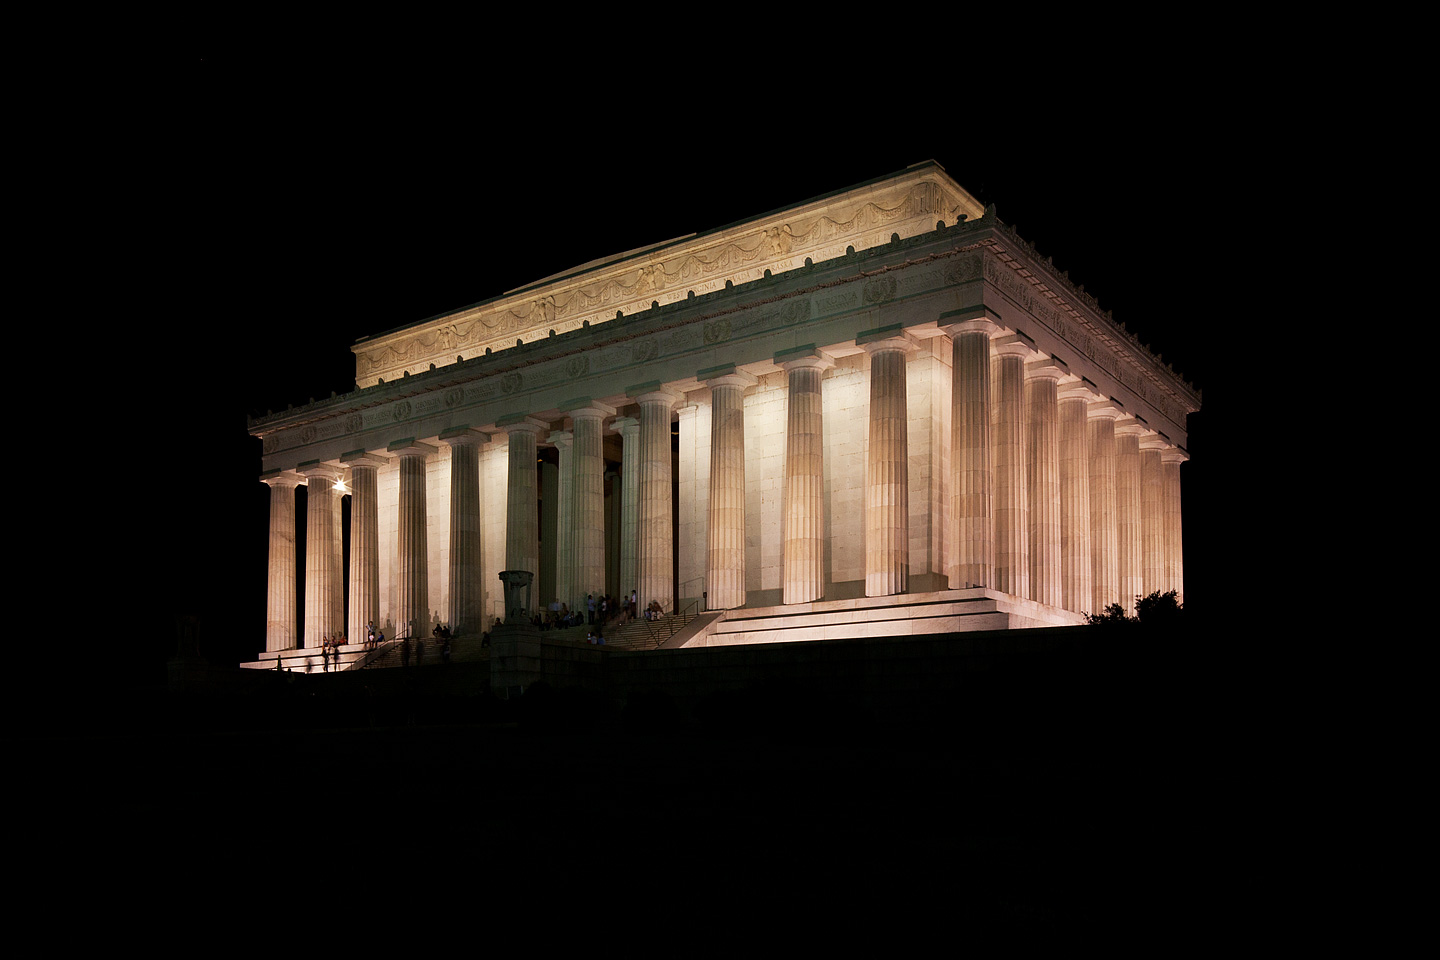 a corner perspective of the lincoln memorial in washington dc photographed at night by Jacob Rosenfeld